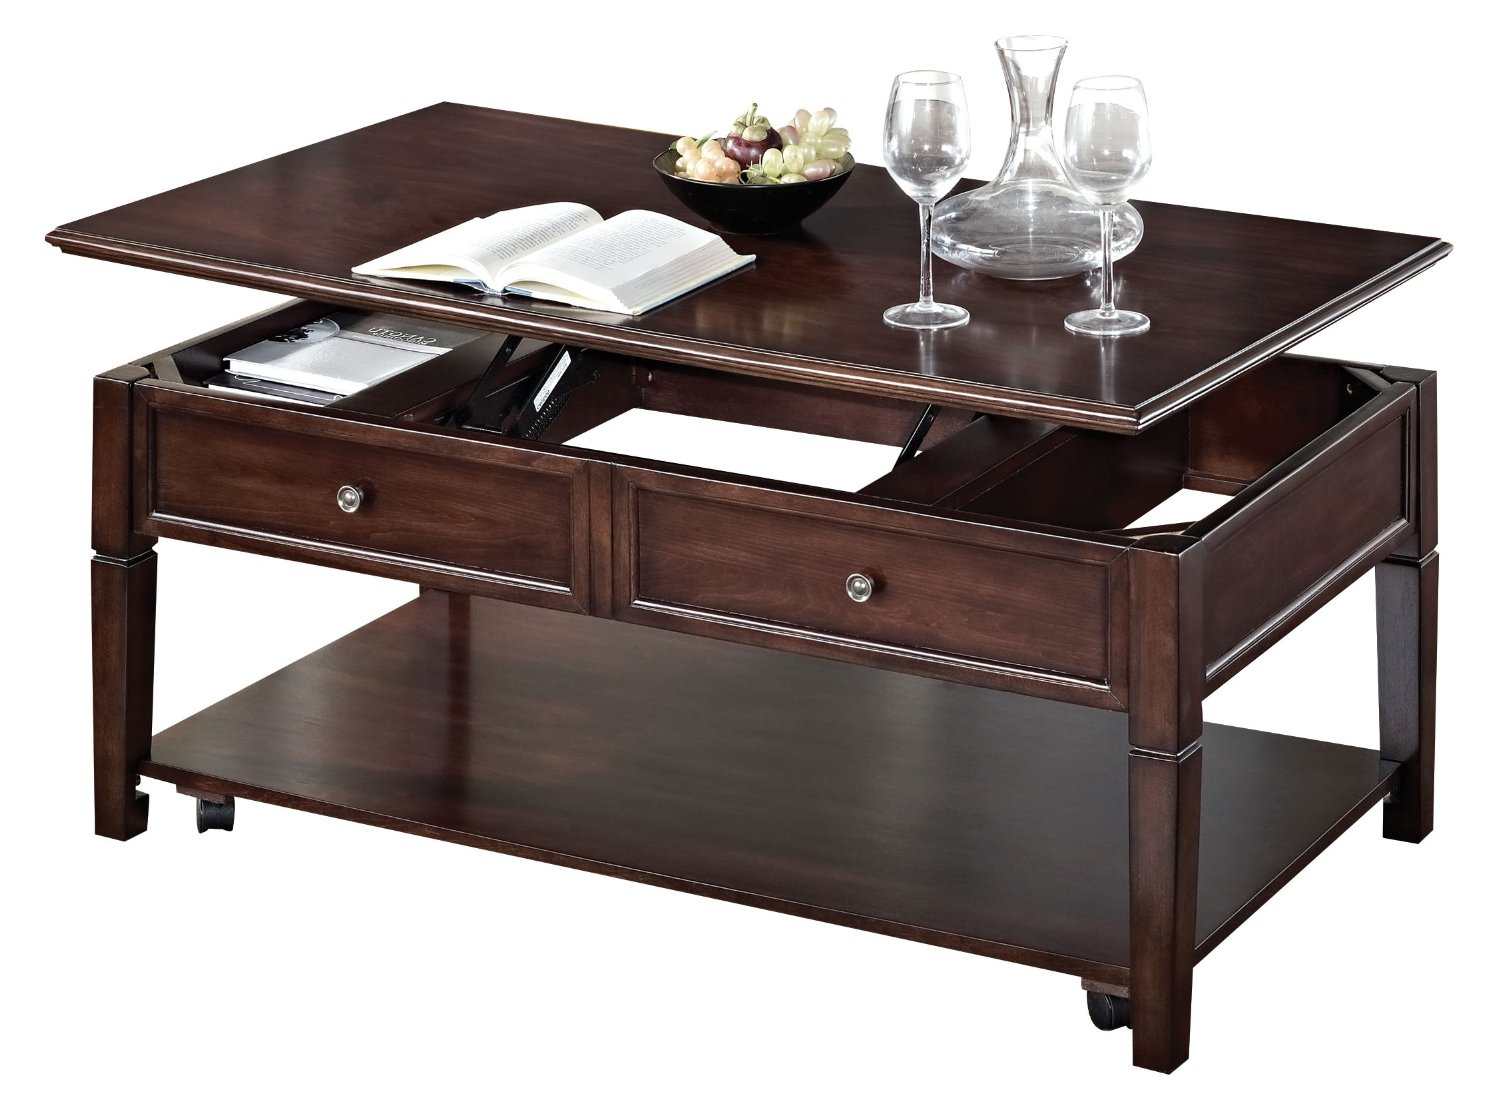 ACME Malachi Coffee Table with Lift Top, Walnut